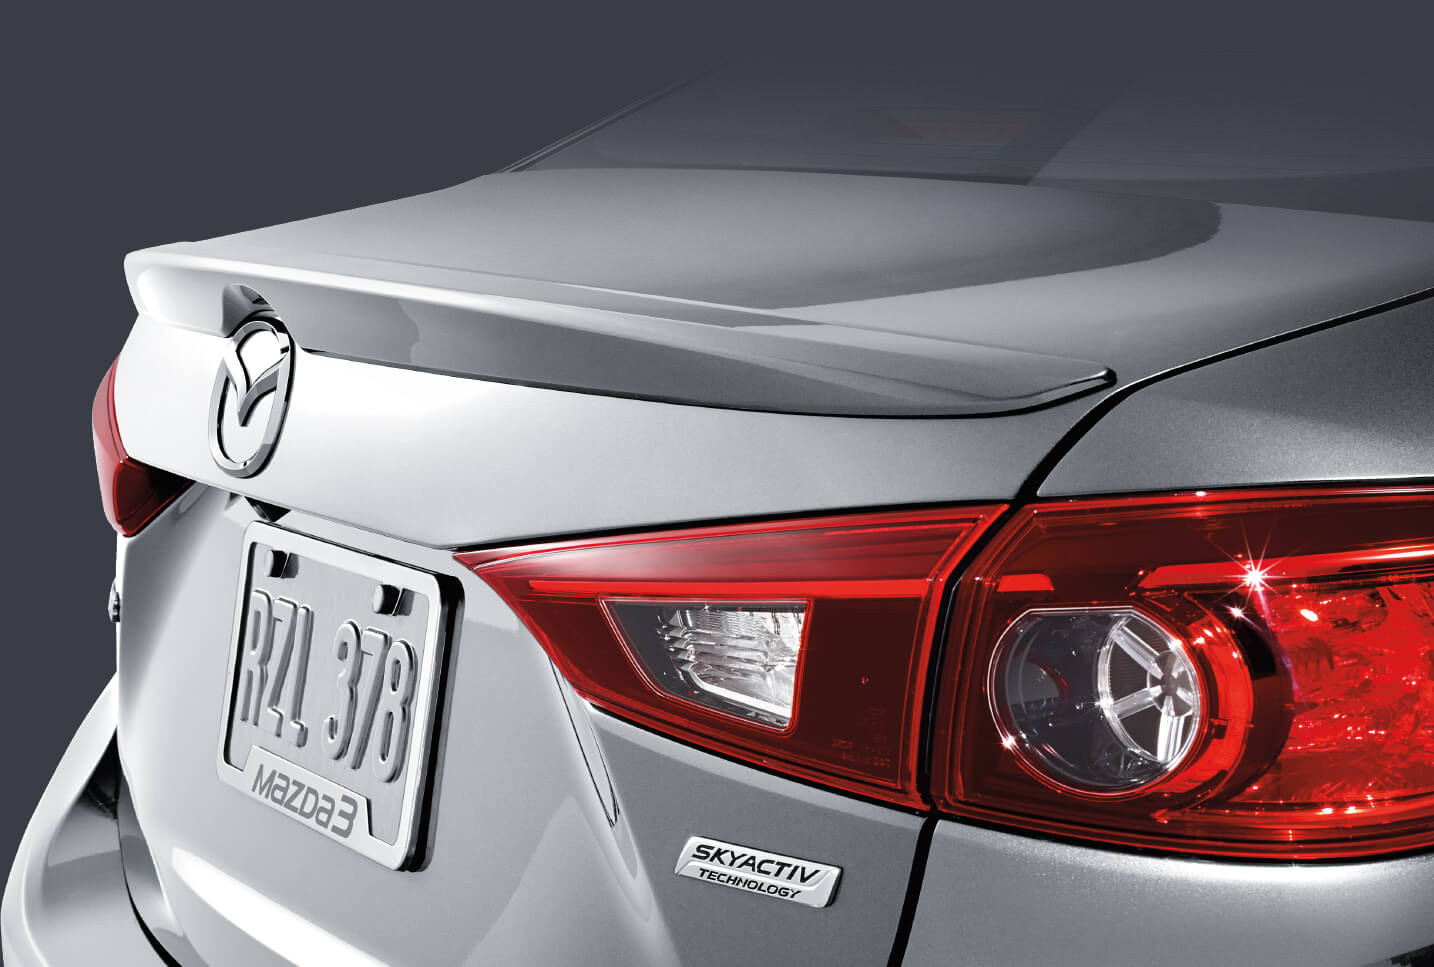 2017 Mazda 3 Hatchback Spoiler 2018 Cars Models